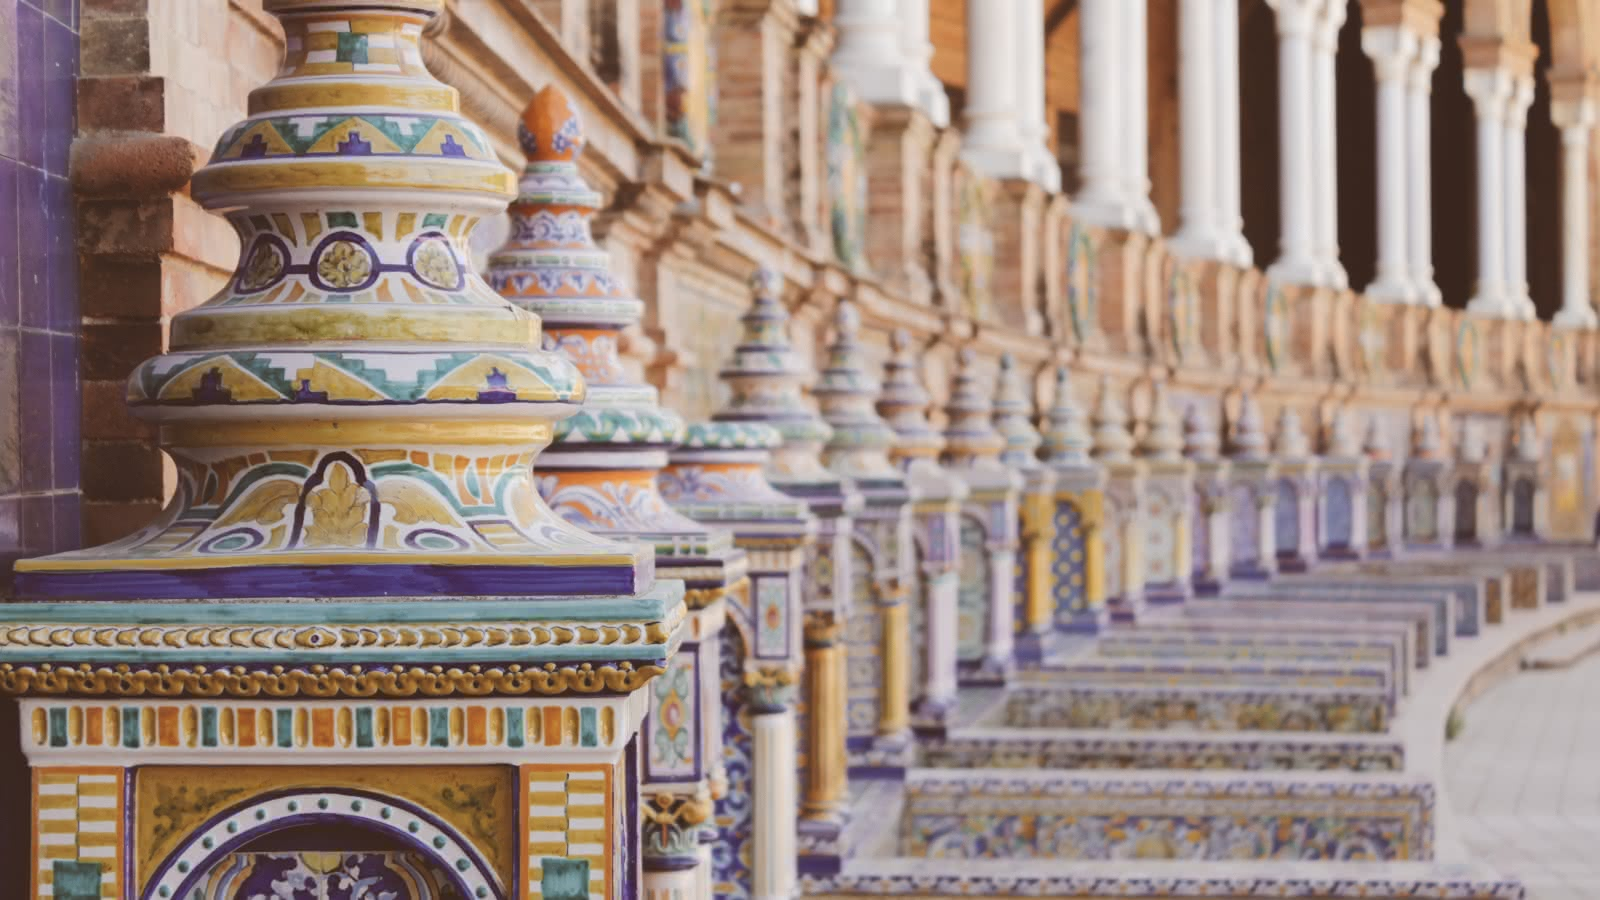 sandemans seville free walking tours